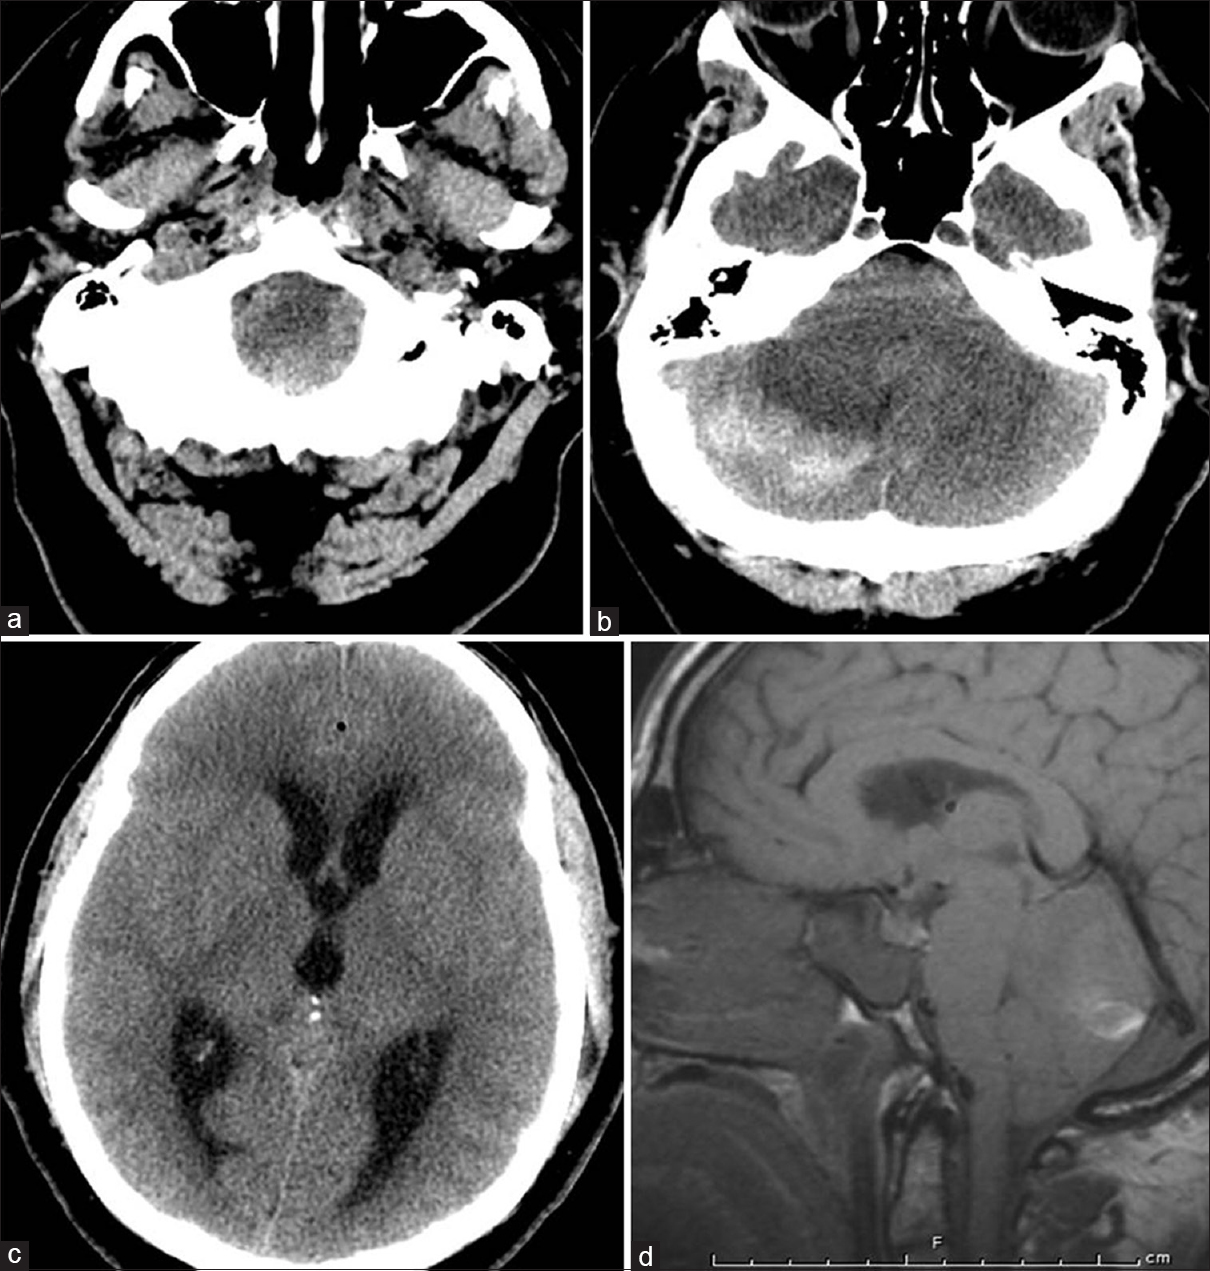 Figure 5: (a) Computed tomography head showing fullness of foramen magnum. (b) Computed tomography head showing posterior fossa hemorrhage. (c) Computed tomography head showing hydrocephalus. (d) Magnetic resonance imaging brain sagittal cut revealing tonsillar descent